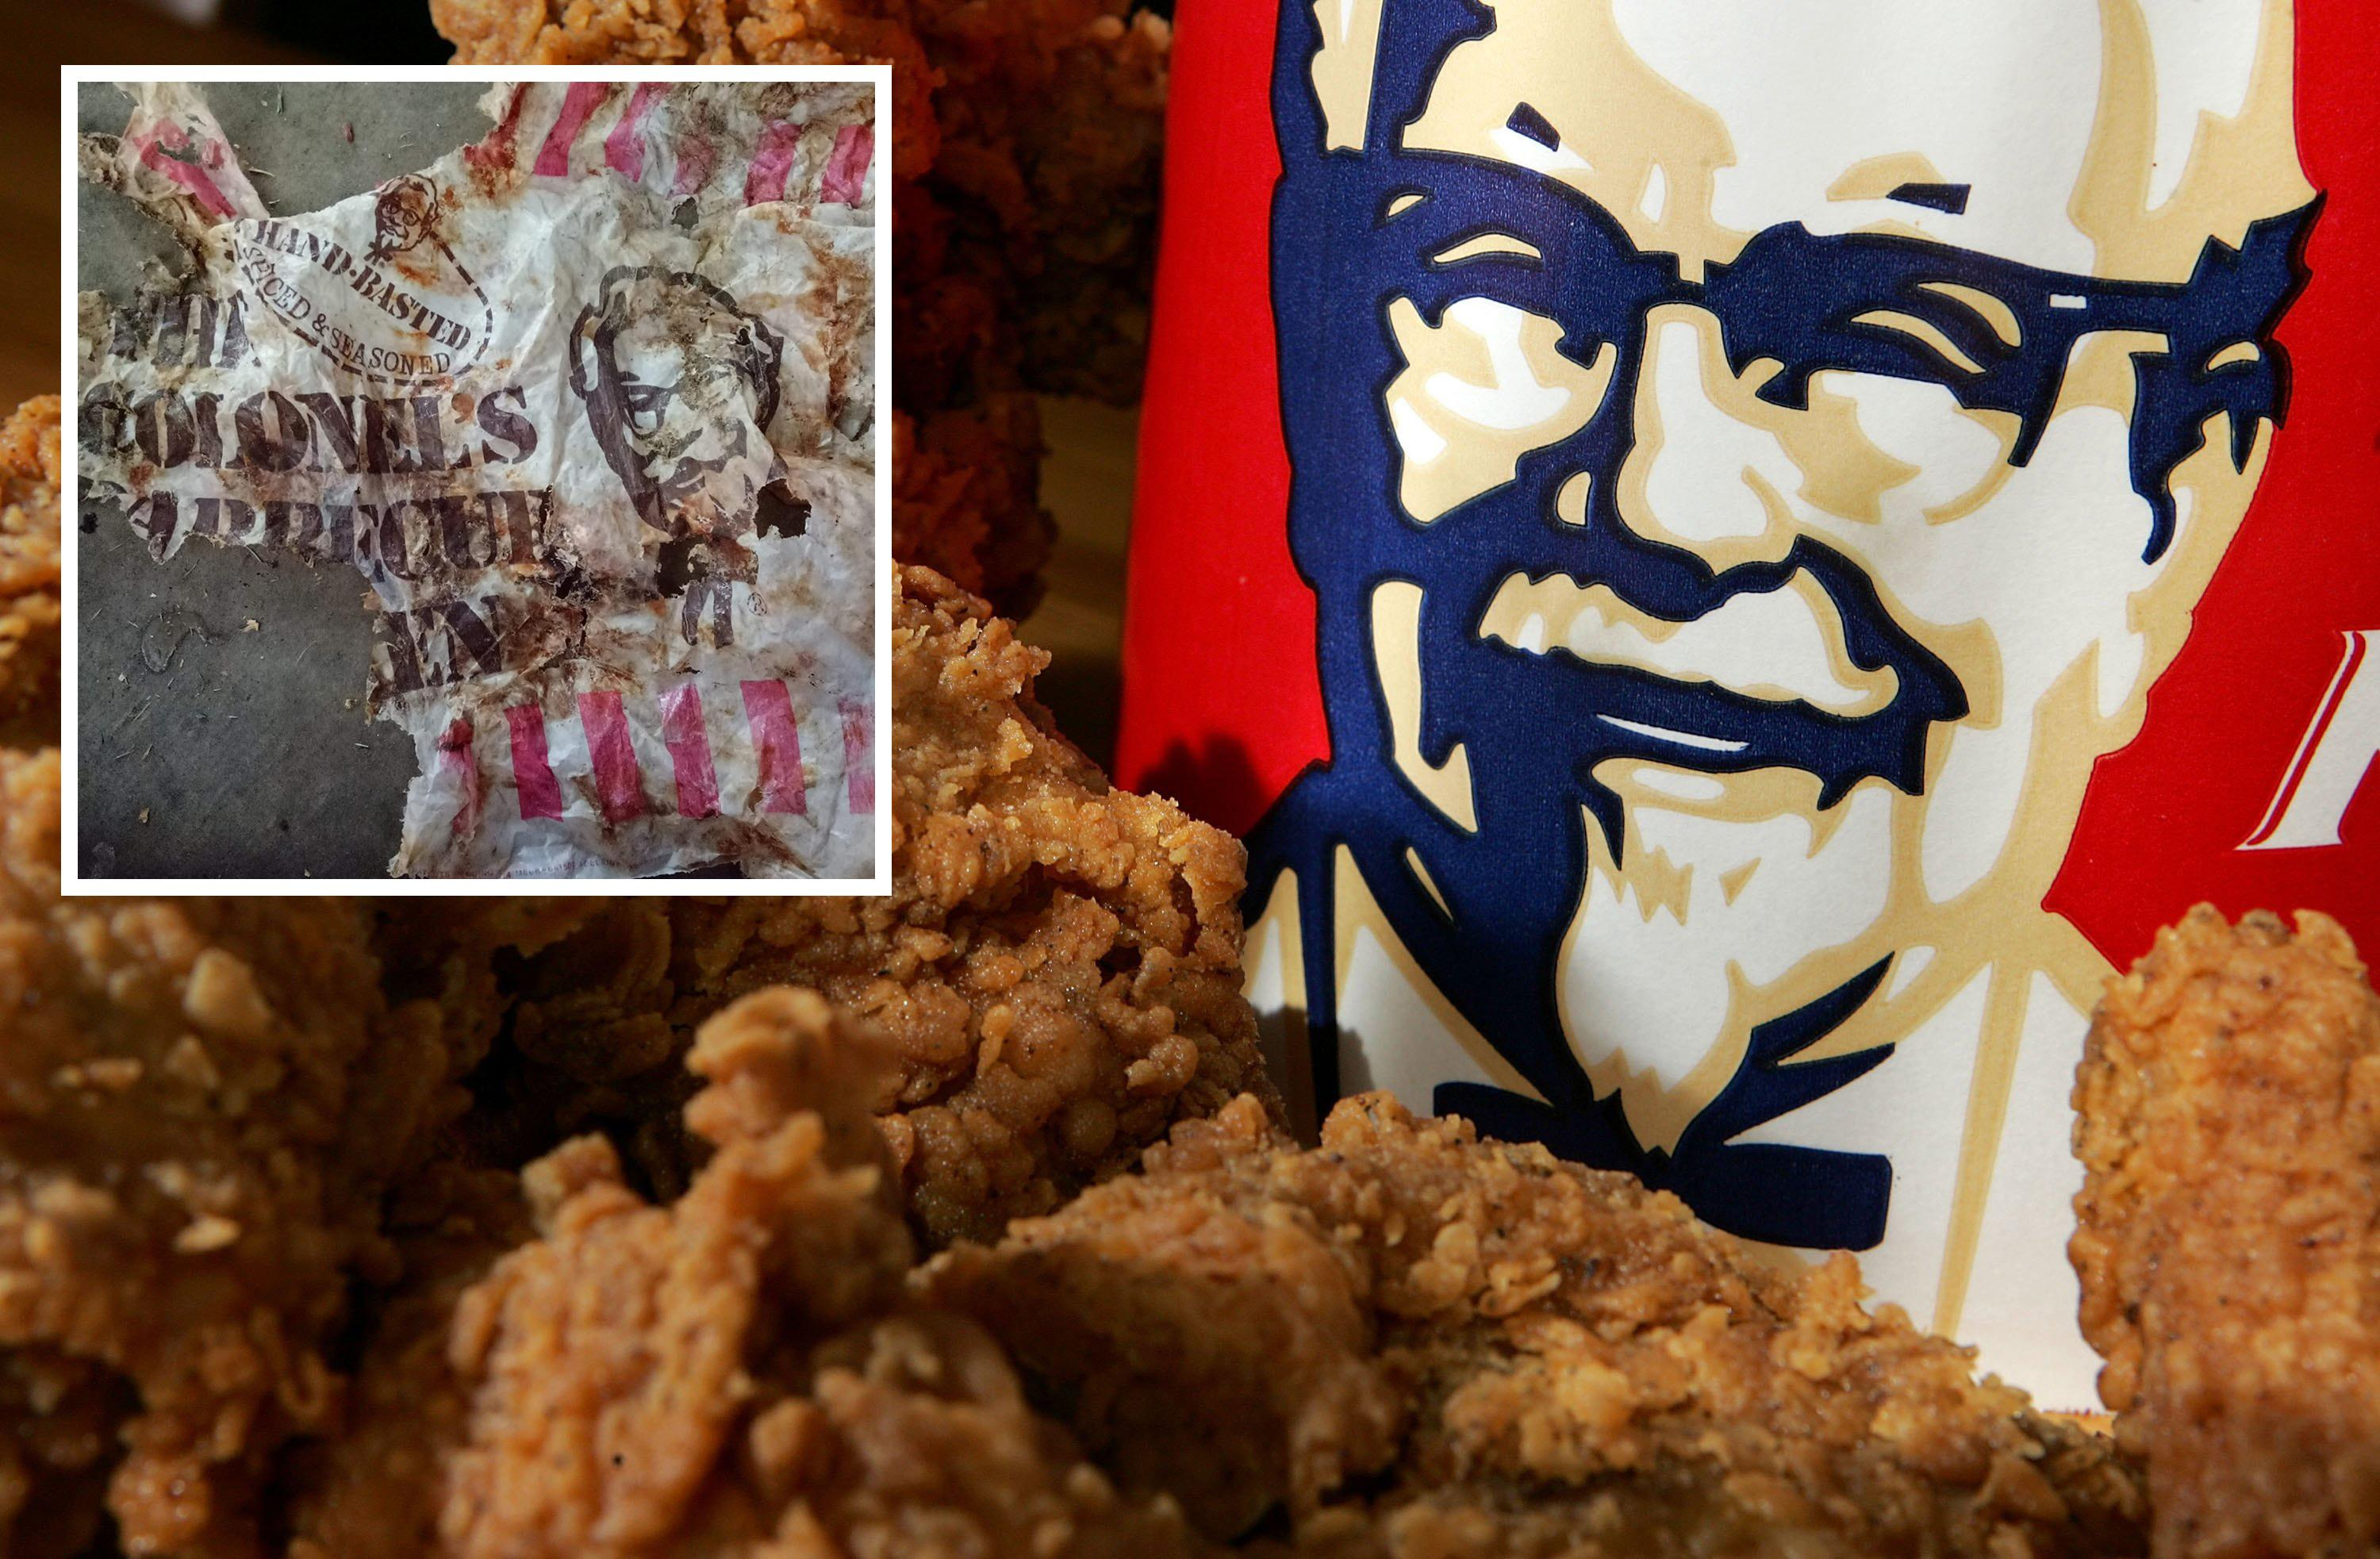 'Startling' KFC discovery off Queensland beach by clean-up divers